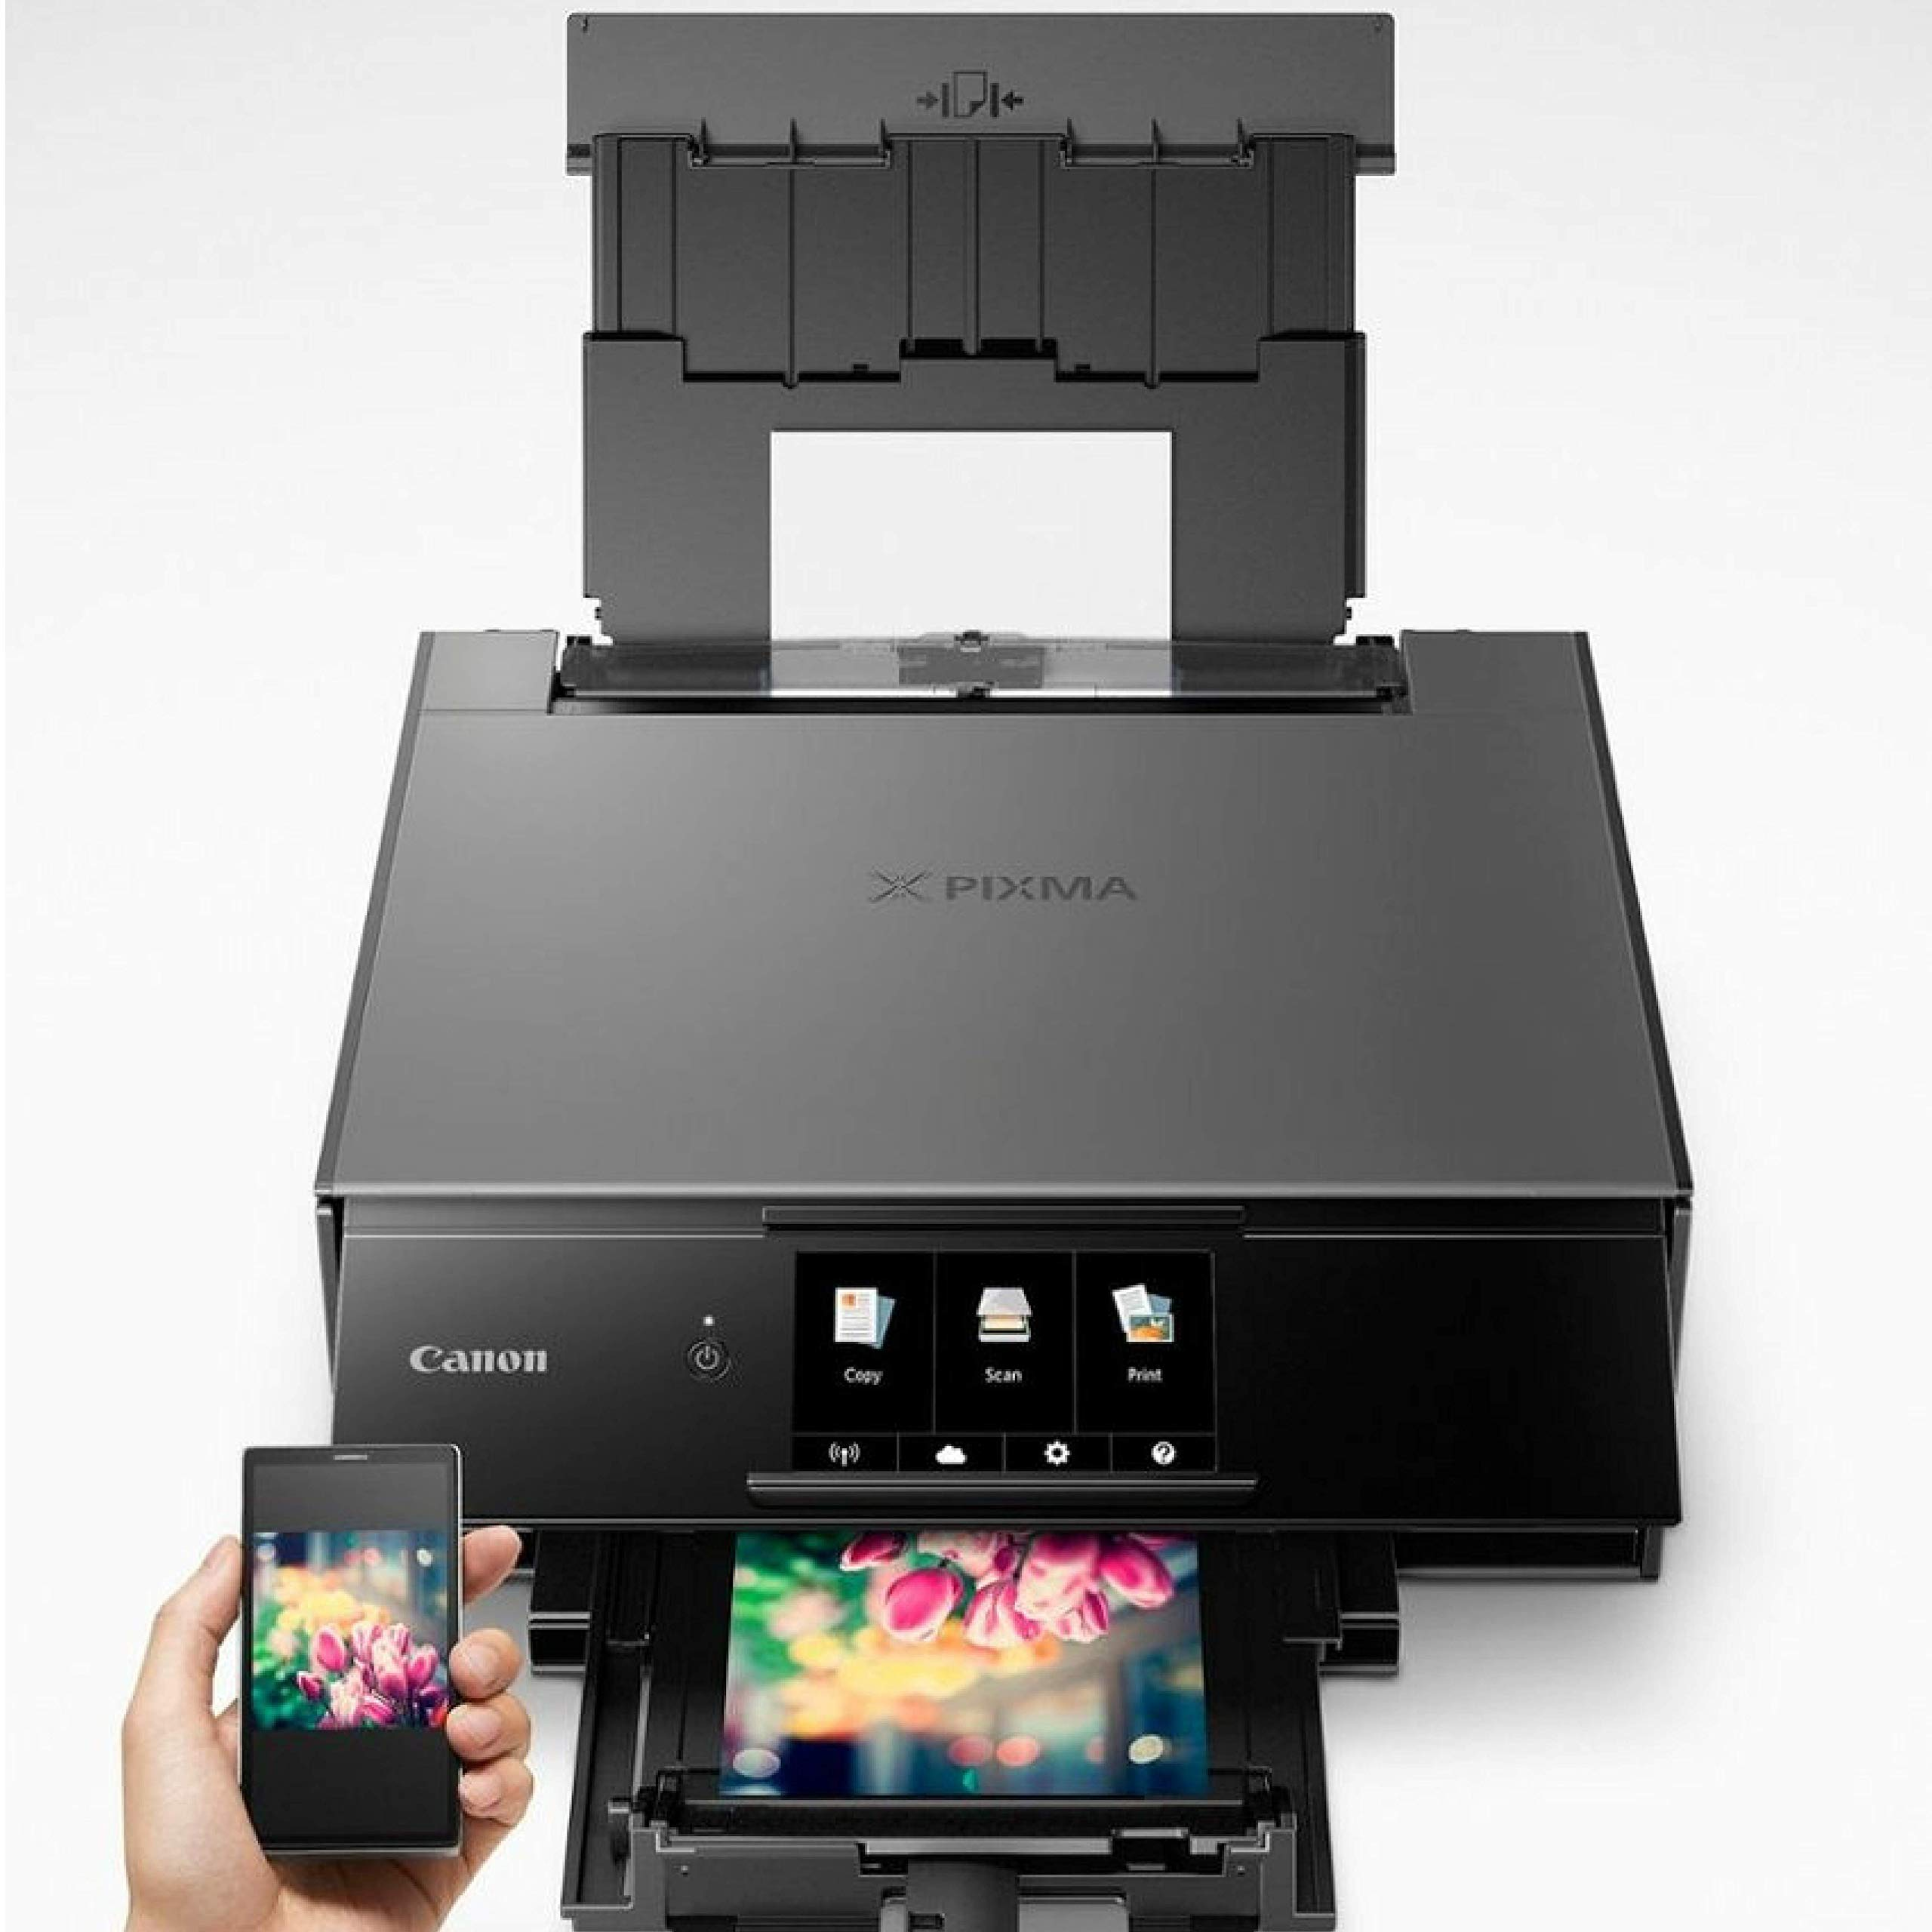 Canon Office and Business Wireless All in one Printer with Bluetooth, Wi-Fi, air Print and Google Cloud Print Compatible Mobile Tablet with Scanner, Copier and CD Printer with Set of Ink by Canon (Image #7)